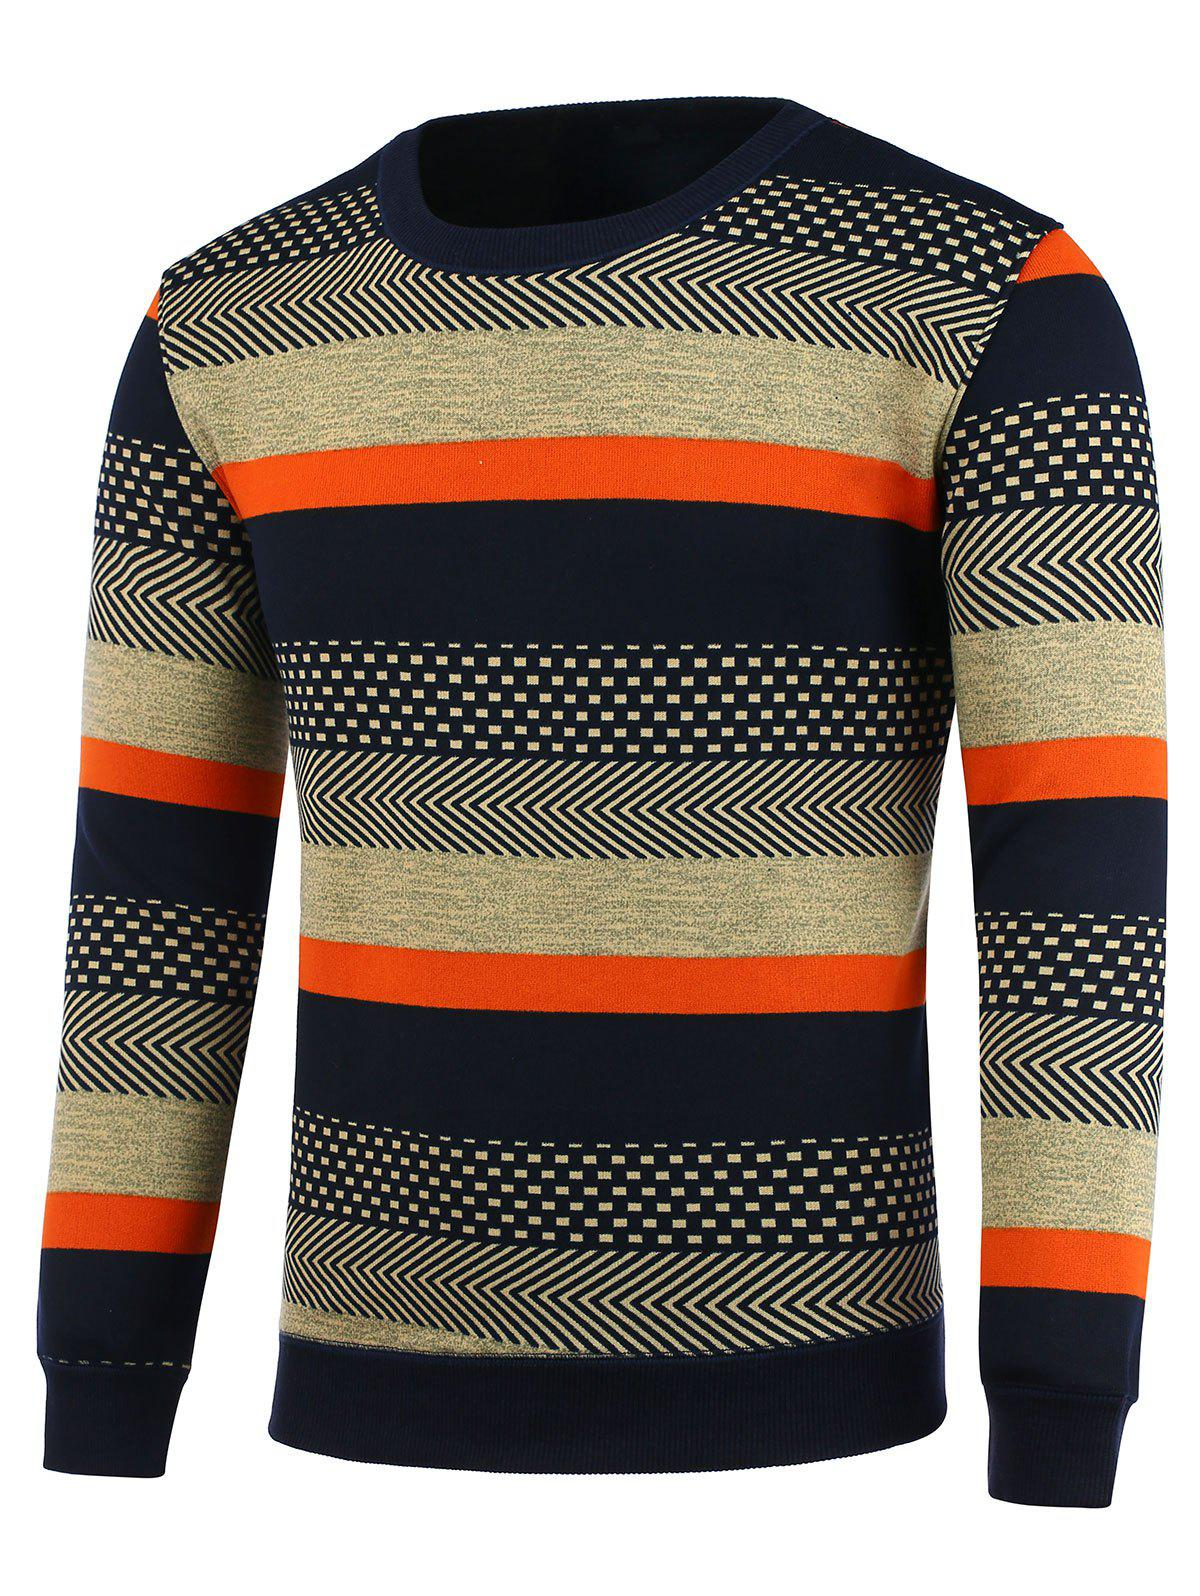 Crew Neck Flocking Tribal Stripe Sweater - COLORMIX 3XL